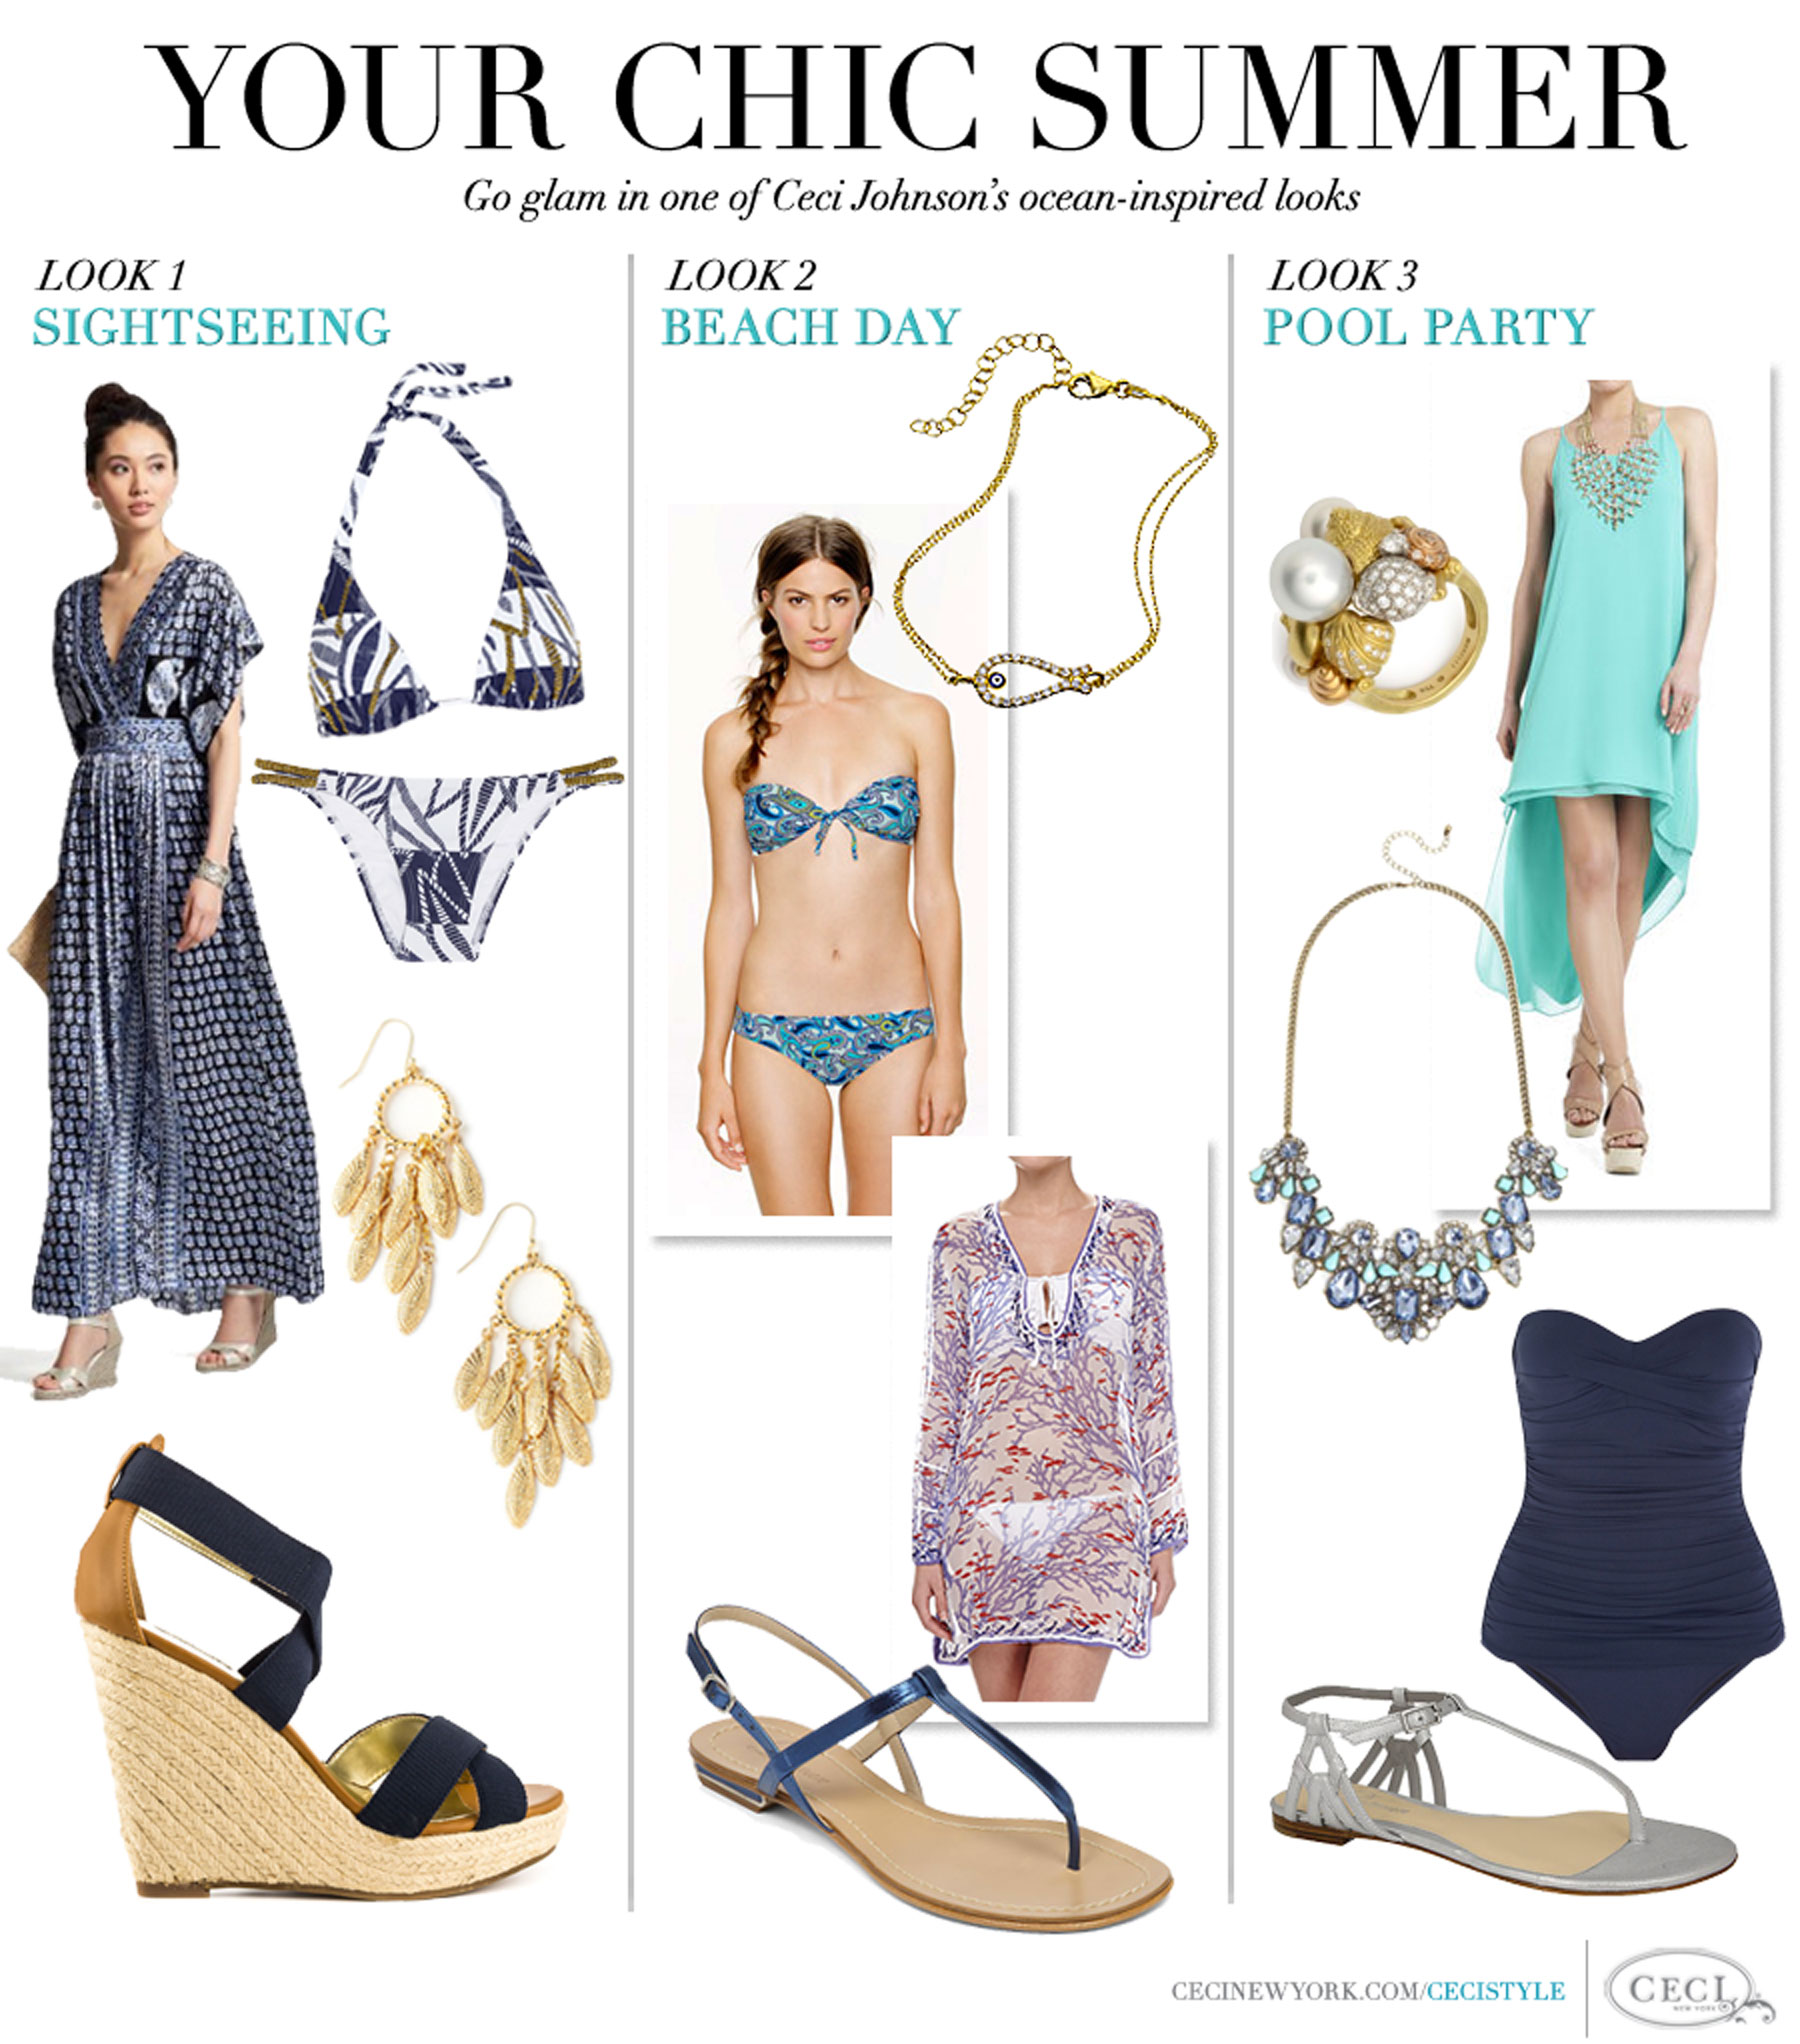 Your Chic Summer - Go glam in one of Ceci Johnson's ocean-inspired looks